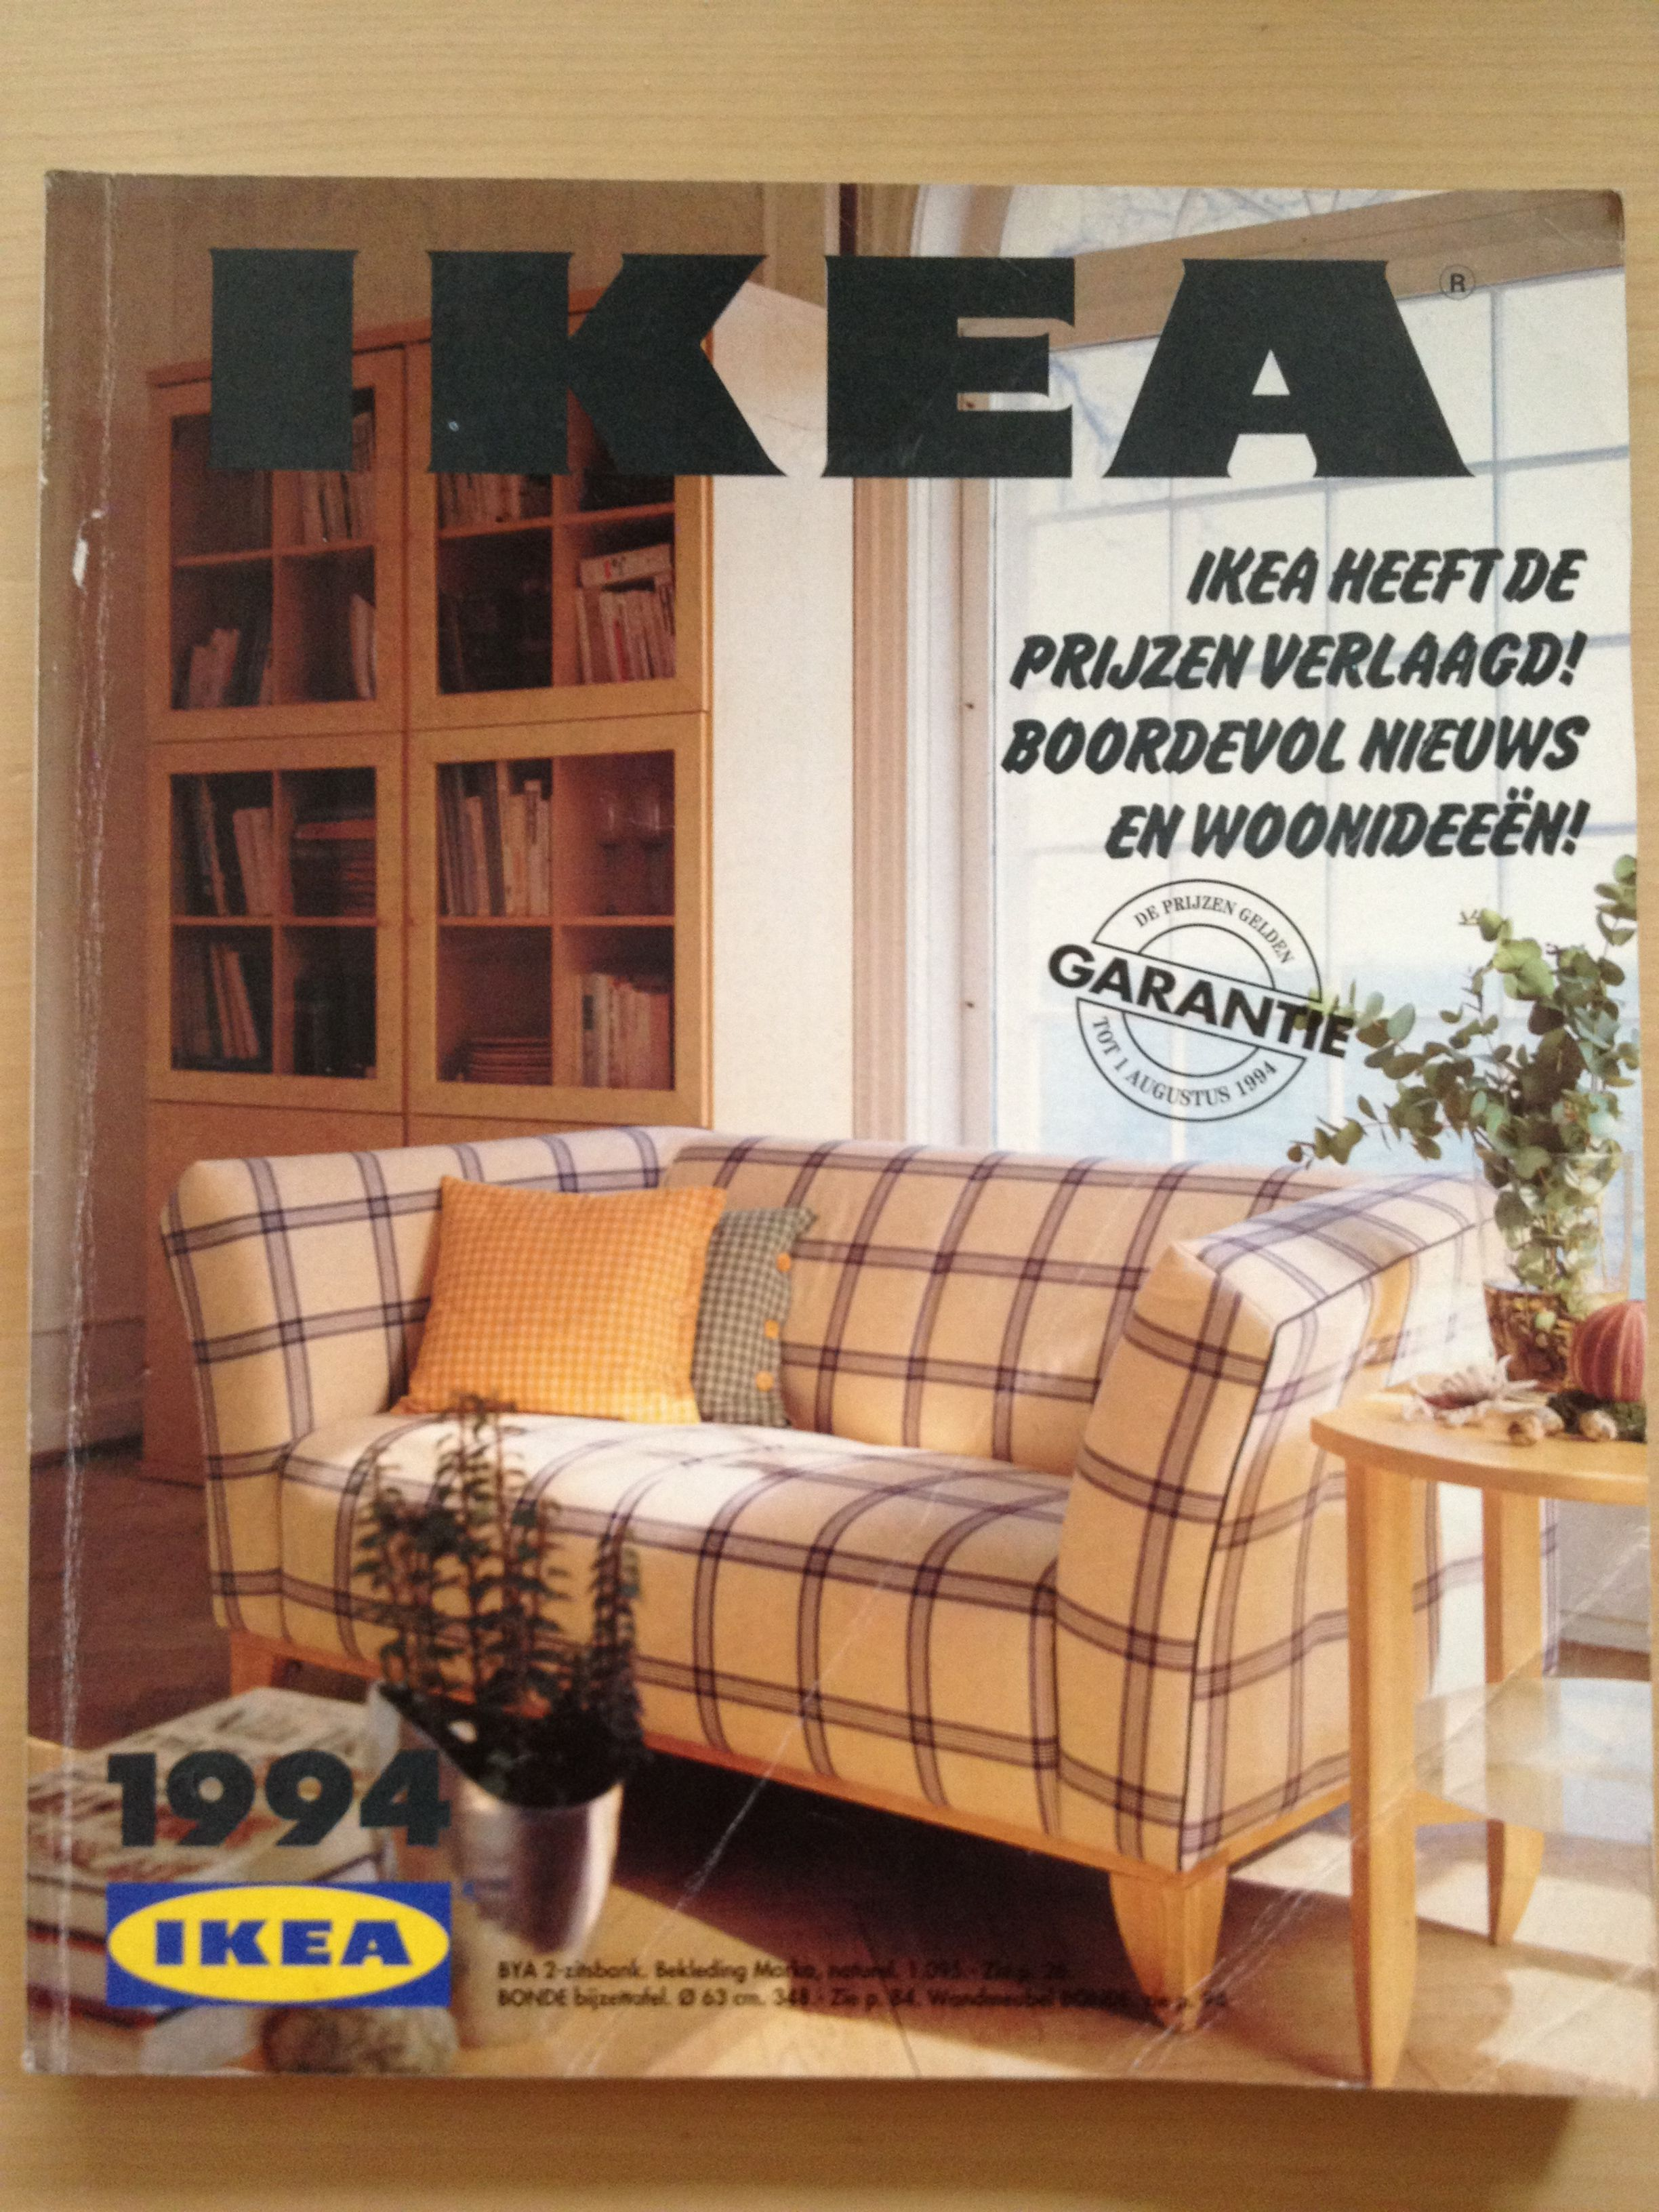 Ikea Catalogue 1994. Ikea catalogue 1989   Books Magazines Catalogues   Pinterest   Catalog